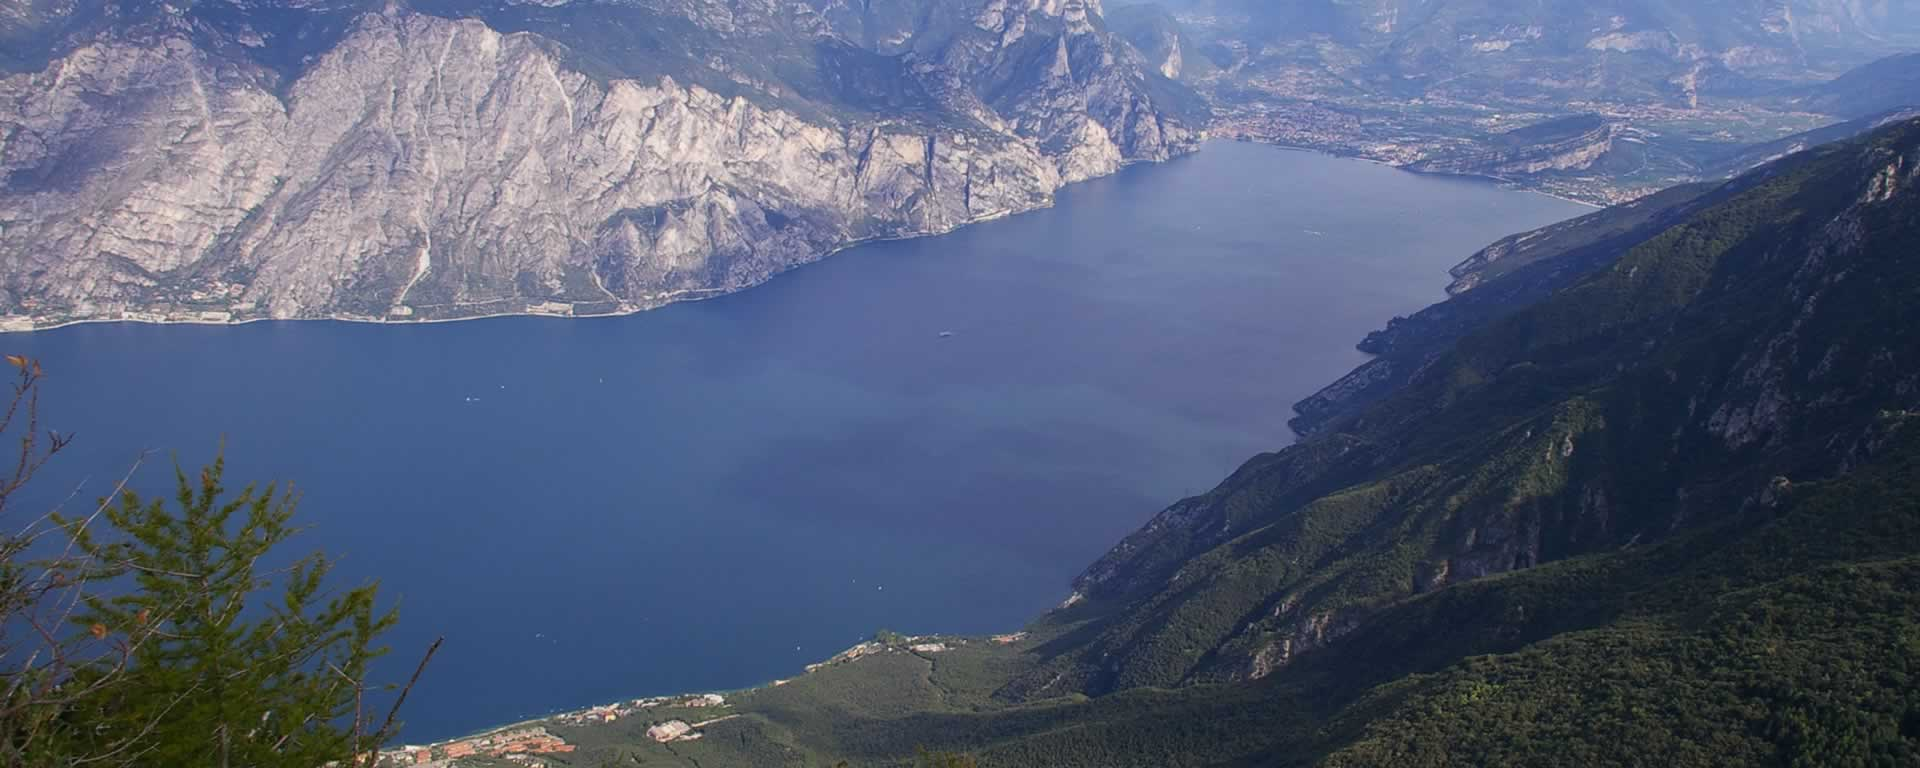 Lake Garda seen from above Navene